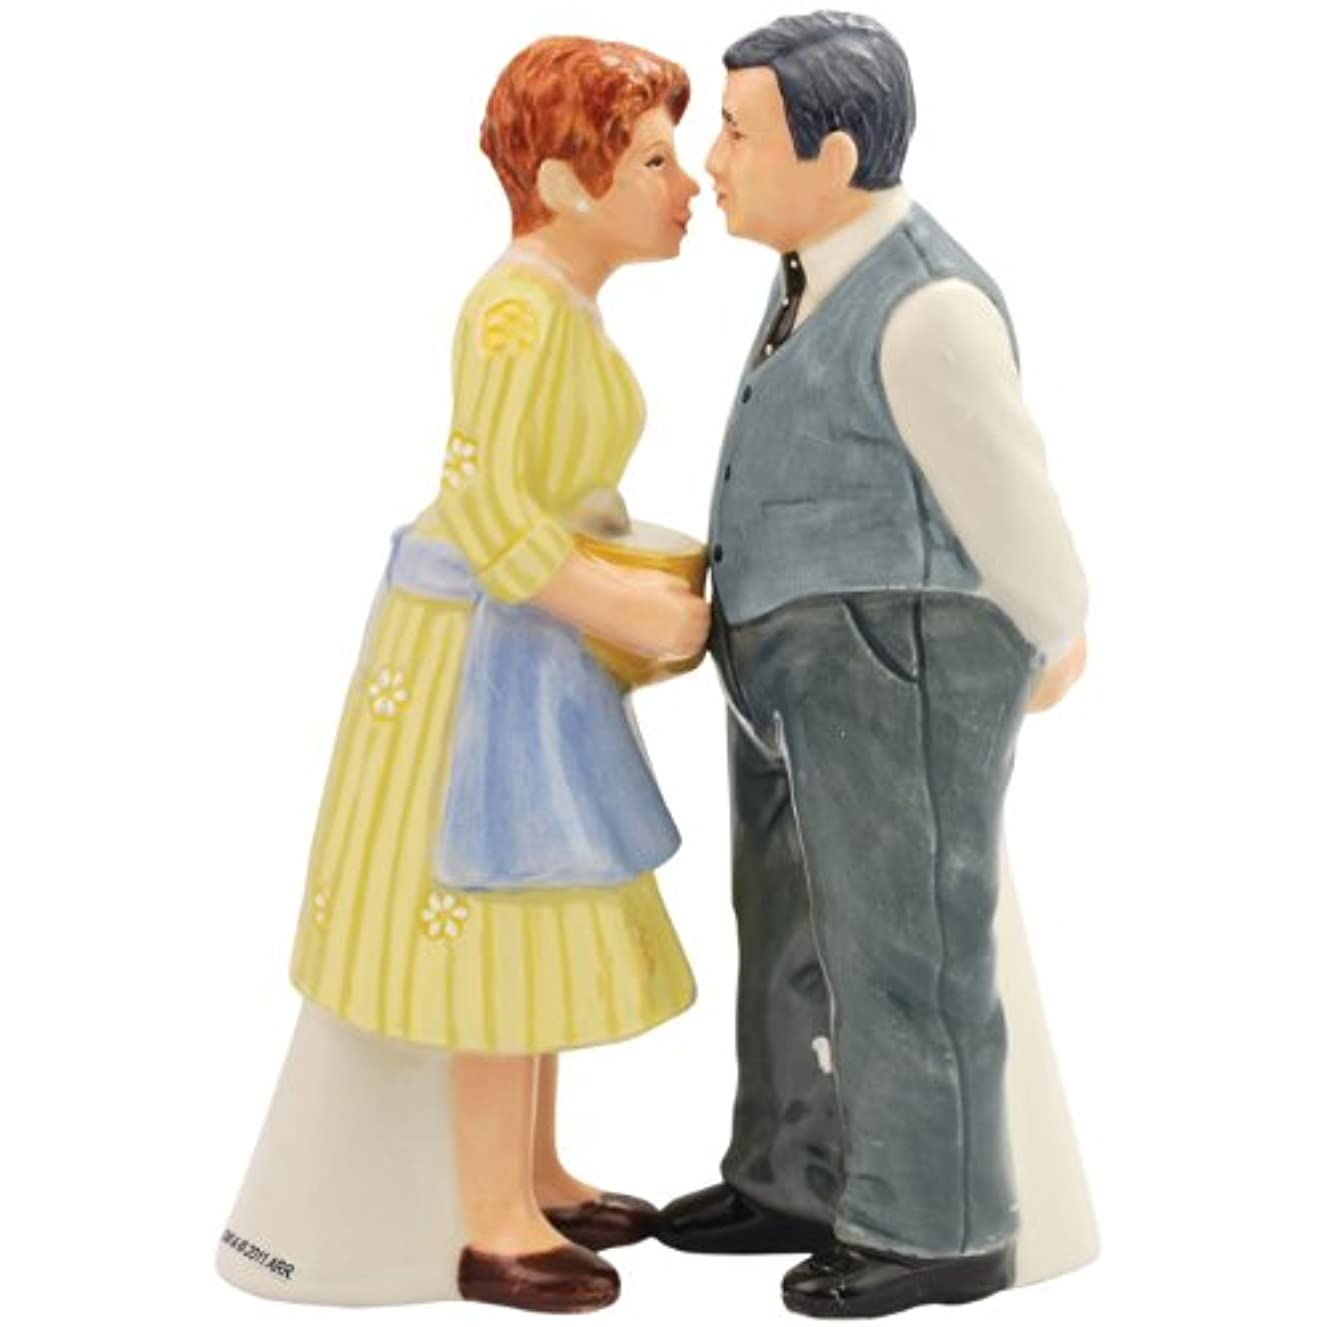 Westland Giftware Happy Days Magnetic Mr. and Mrs. C Salt and Pepper Shaker Set, 4-1/4-Inch